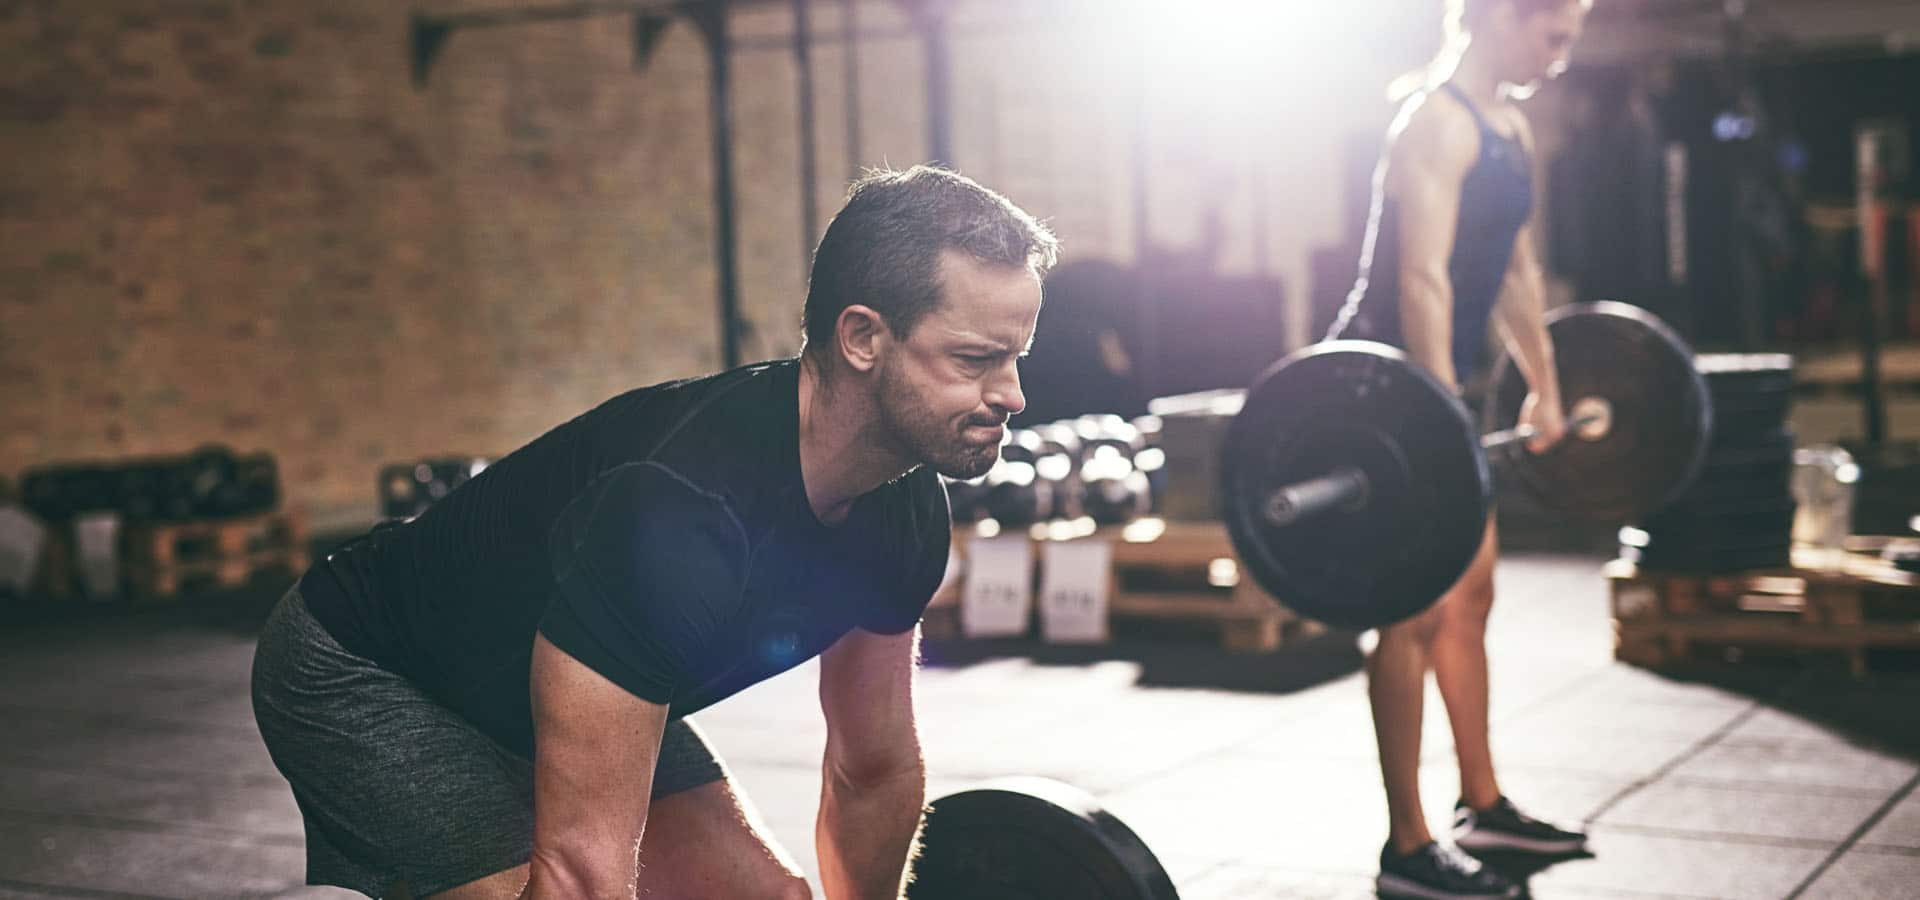 Change your attitude toward working out, and it can seem easier